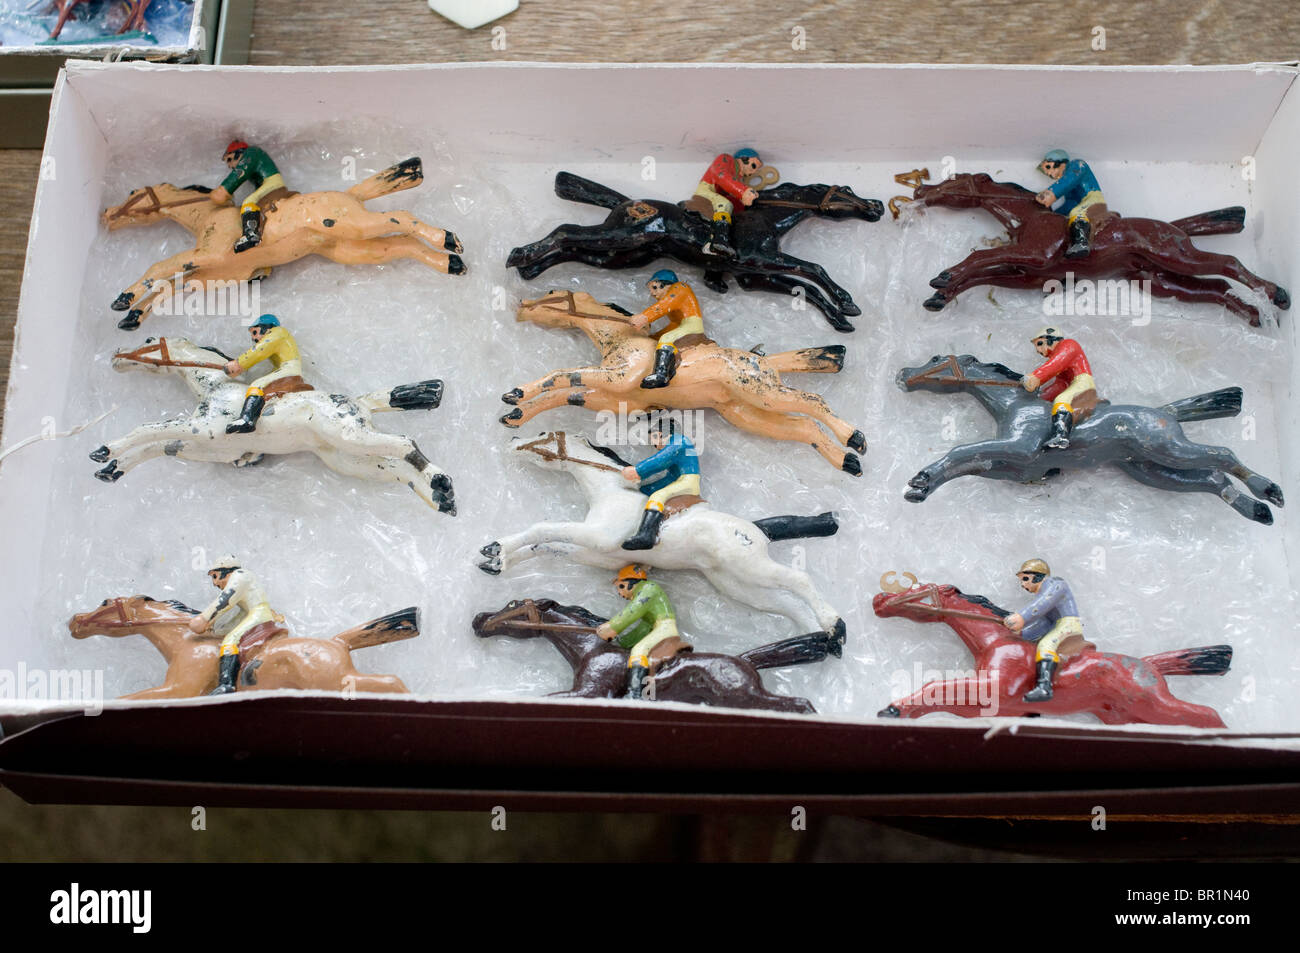 race track toys in a box - Stock Image